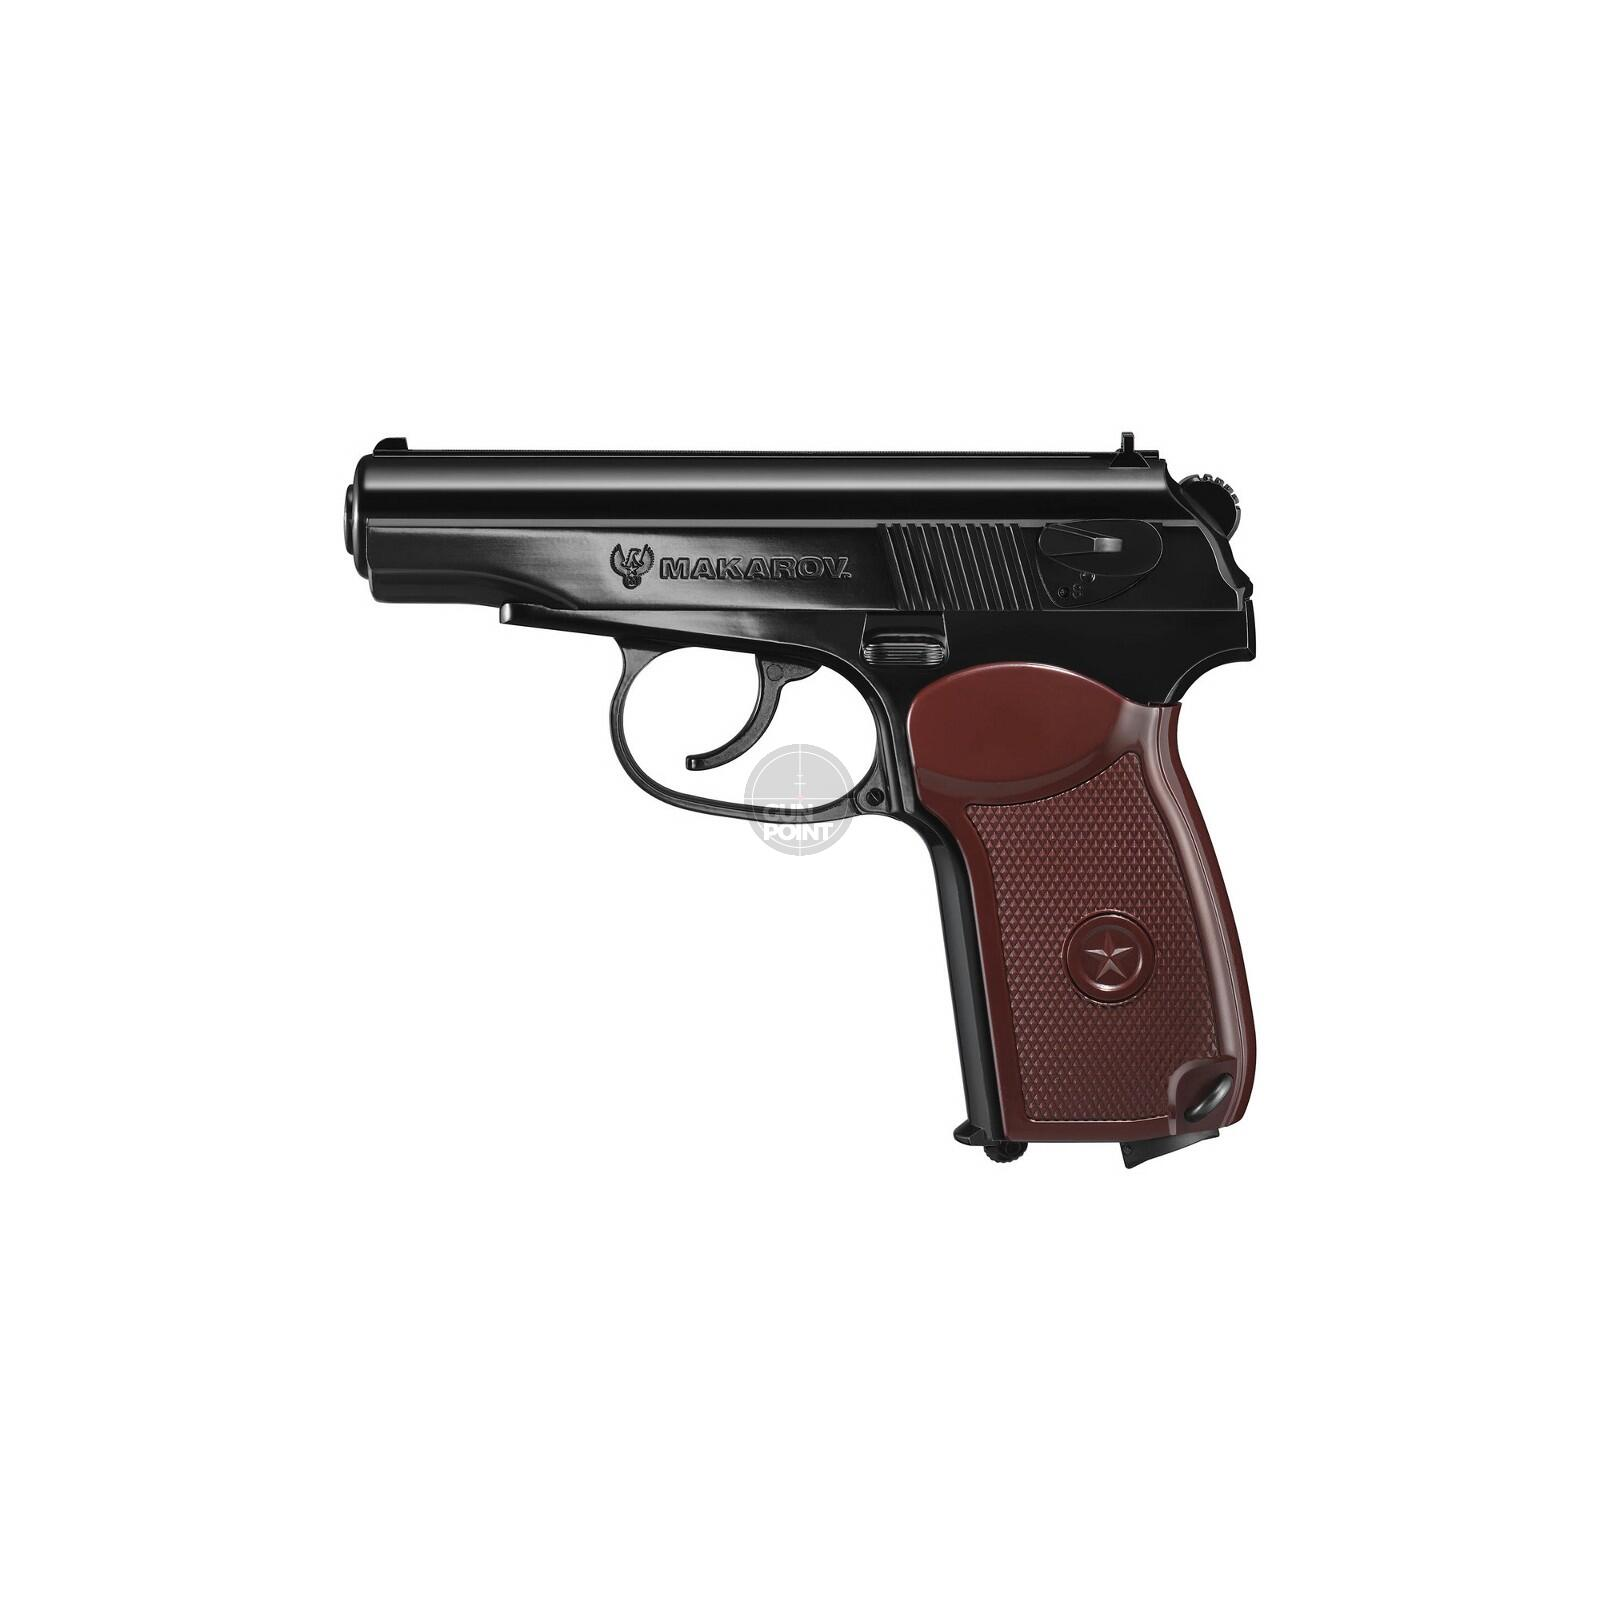 Luftpistole - Legends - Makarov BB - Co2-System  Kal. 4,5 mm